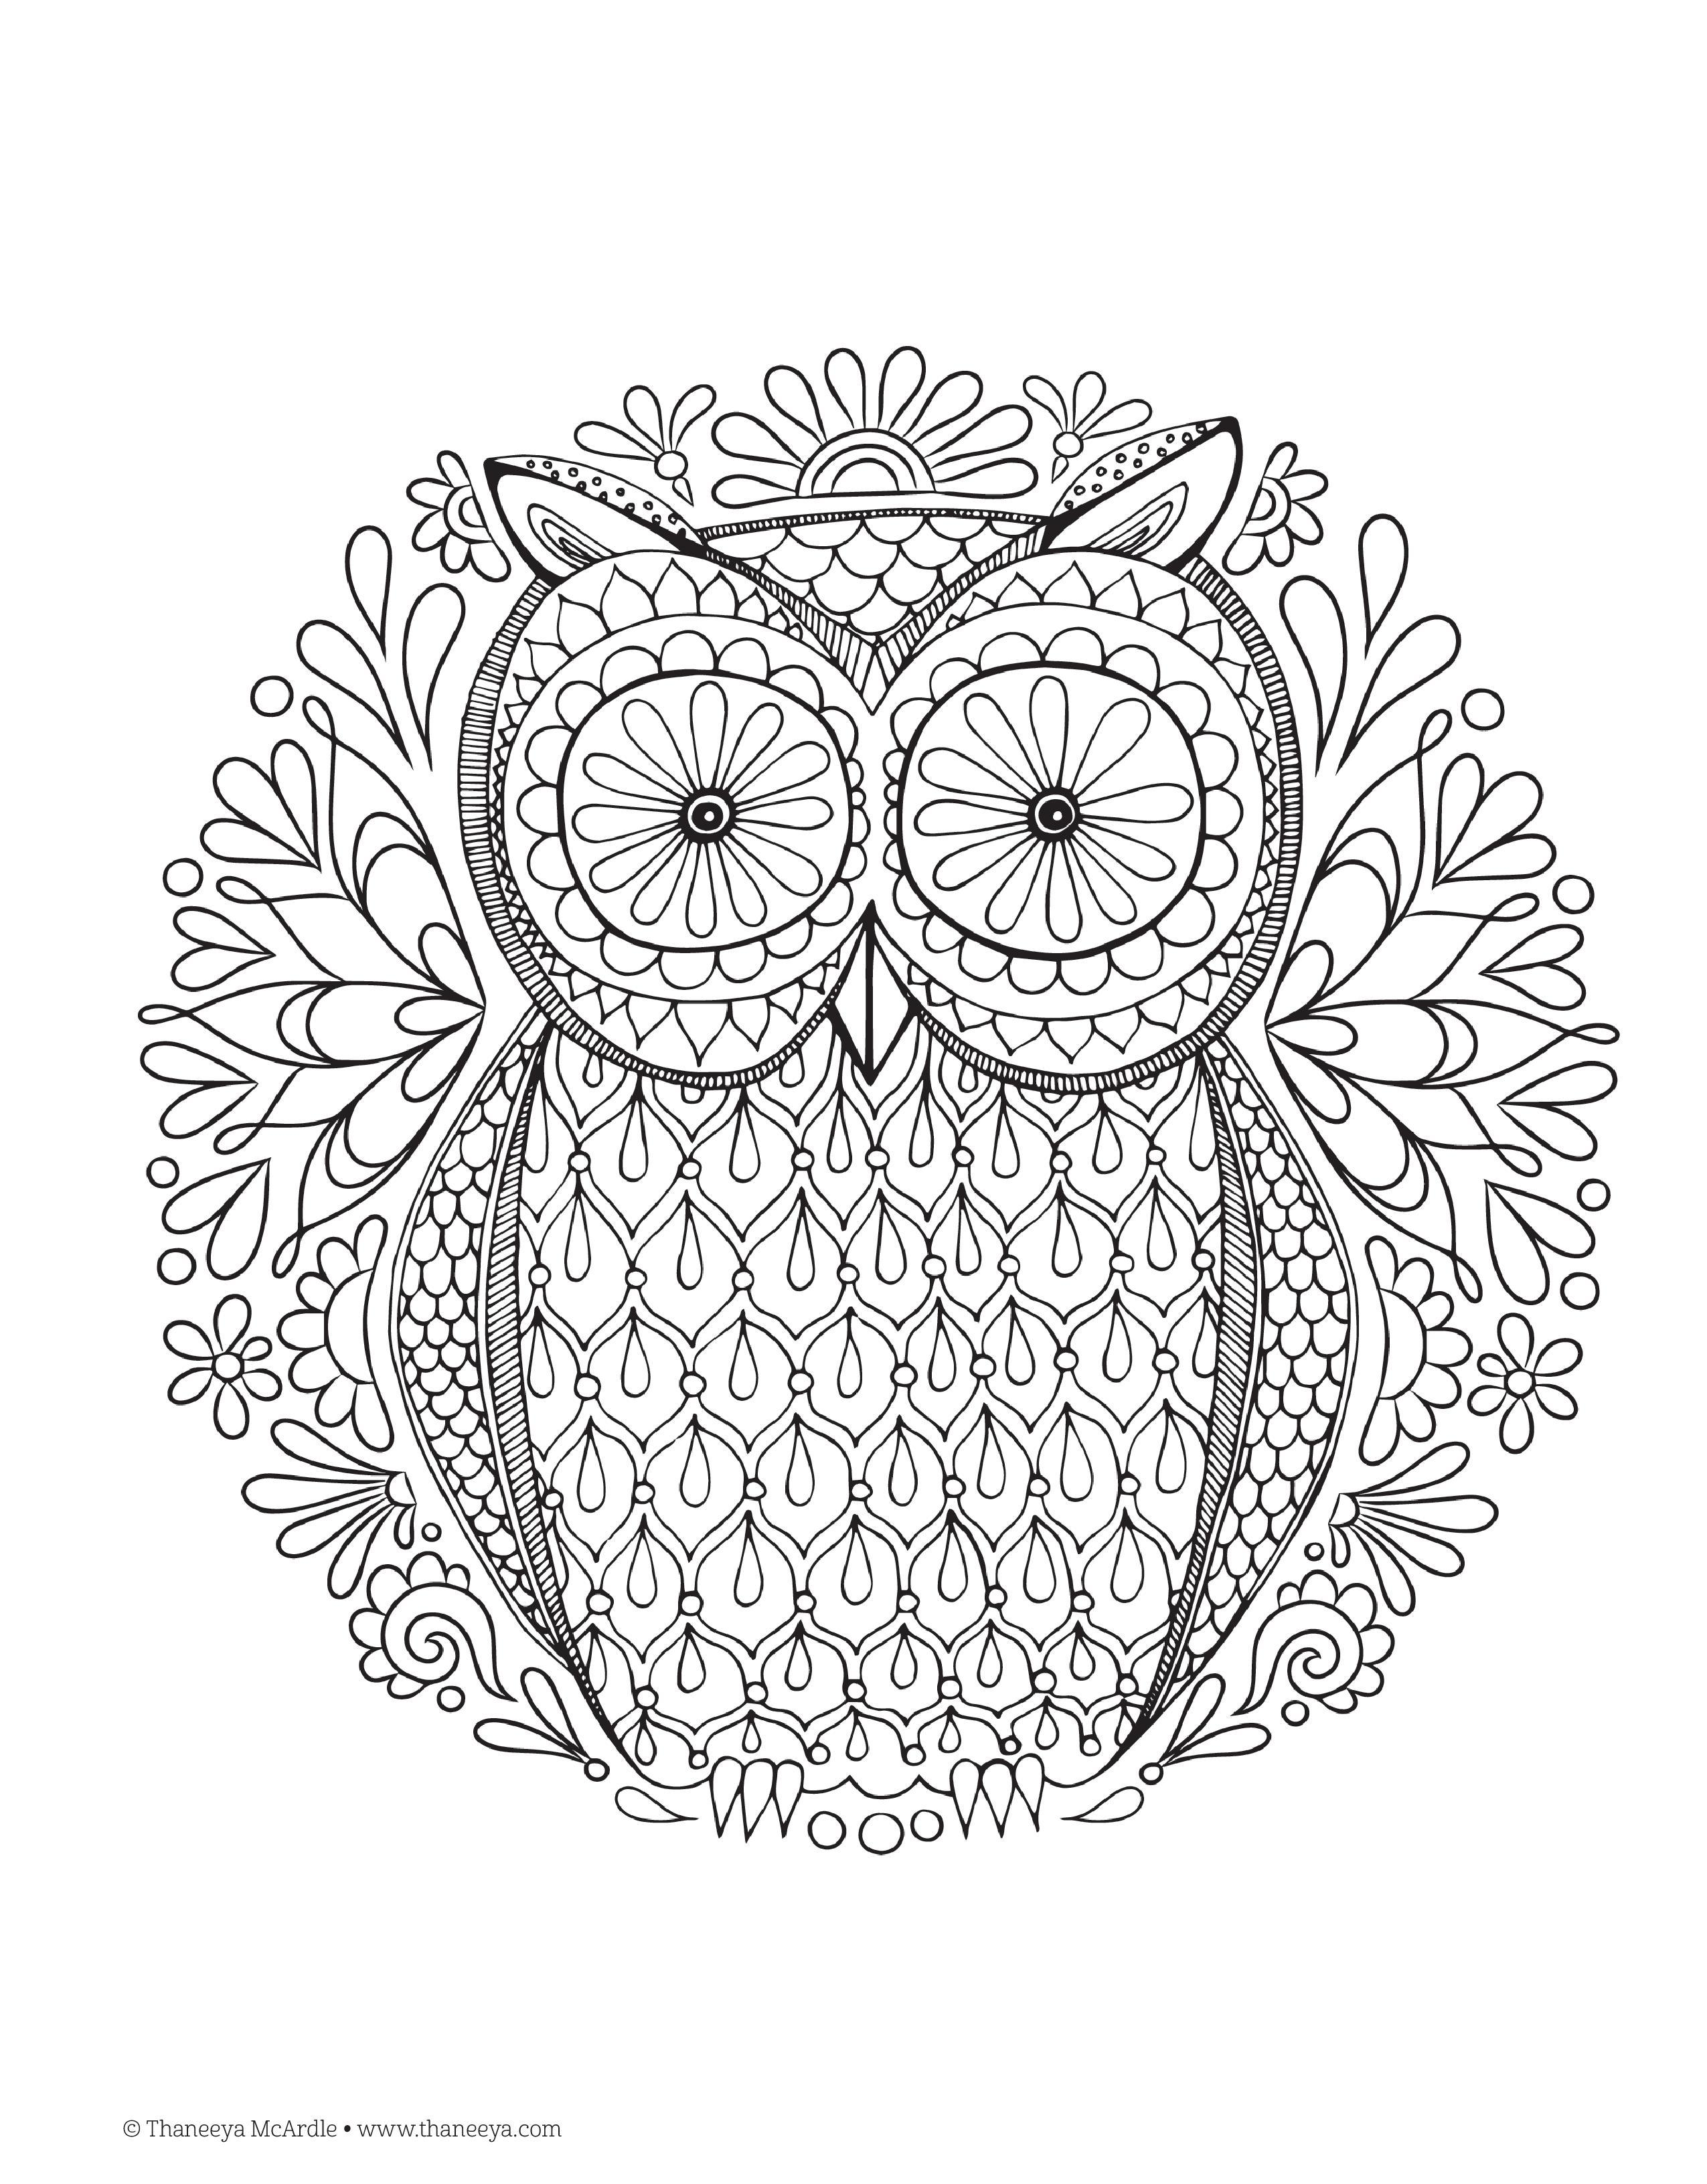 8 Images of Printable Adult Coloring Book Pages